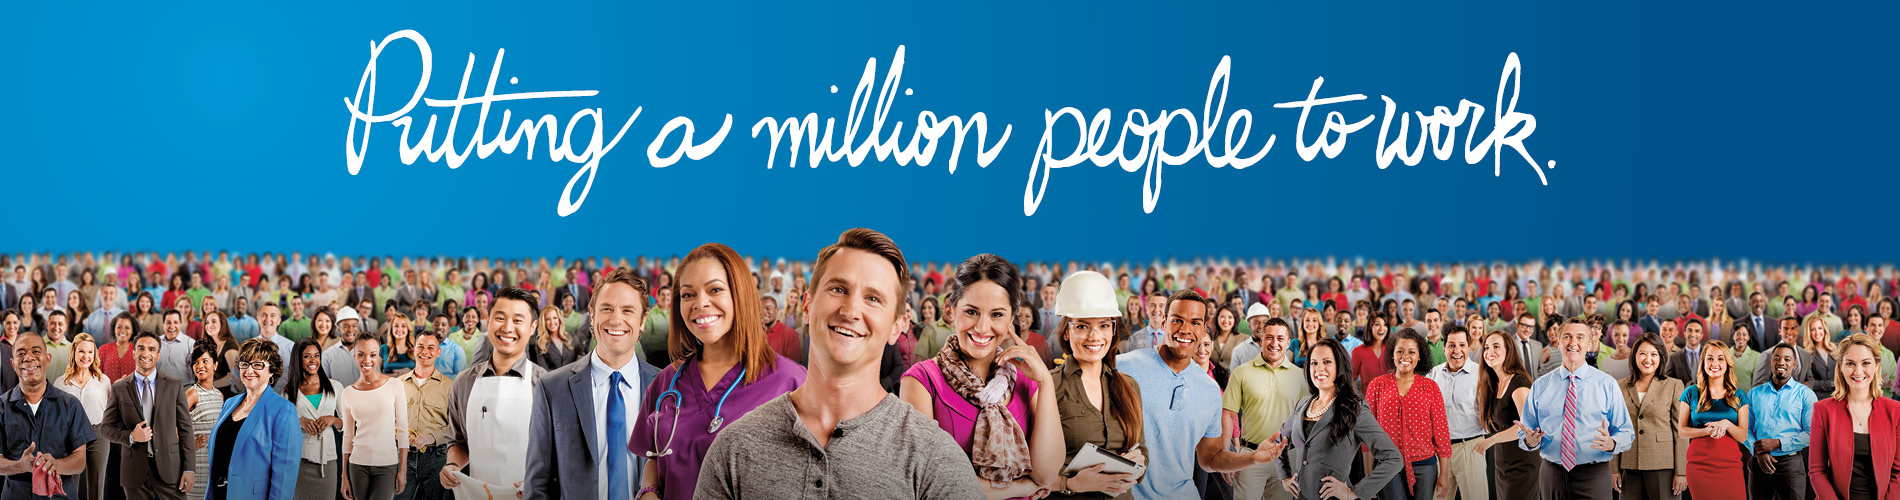 Putting A Million People To Work - 3 - Front Page Banner